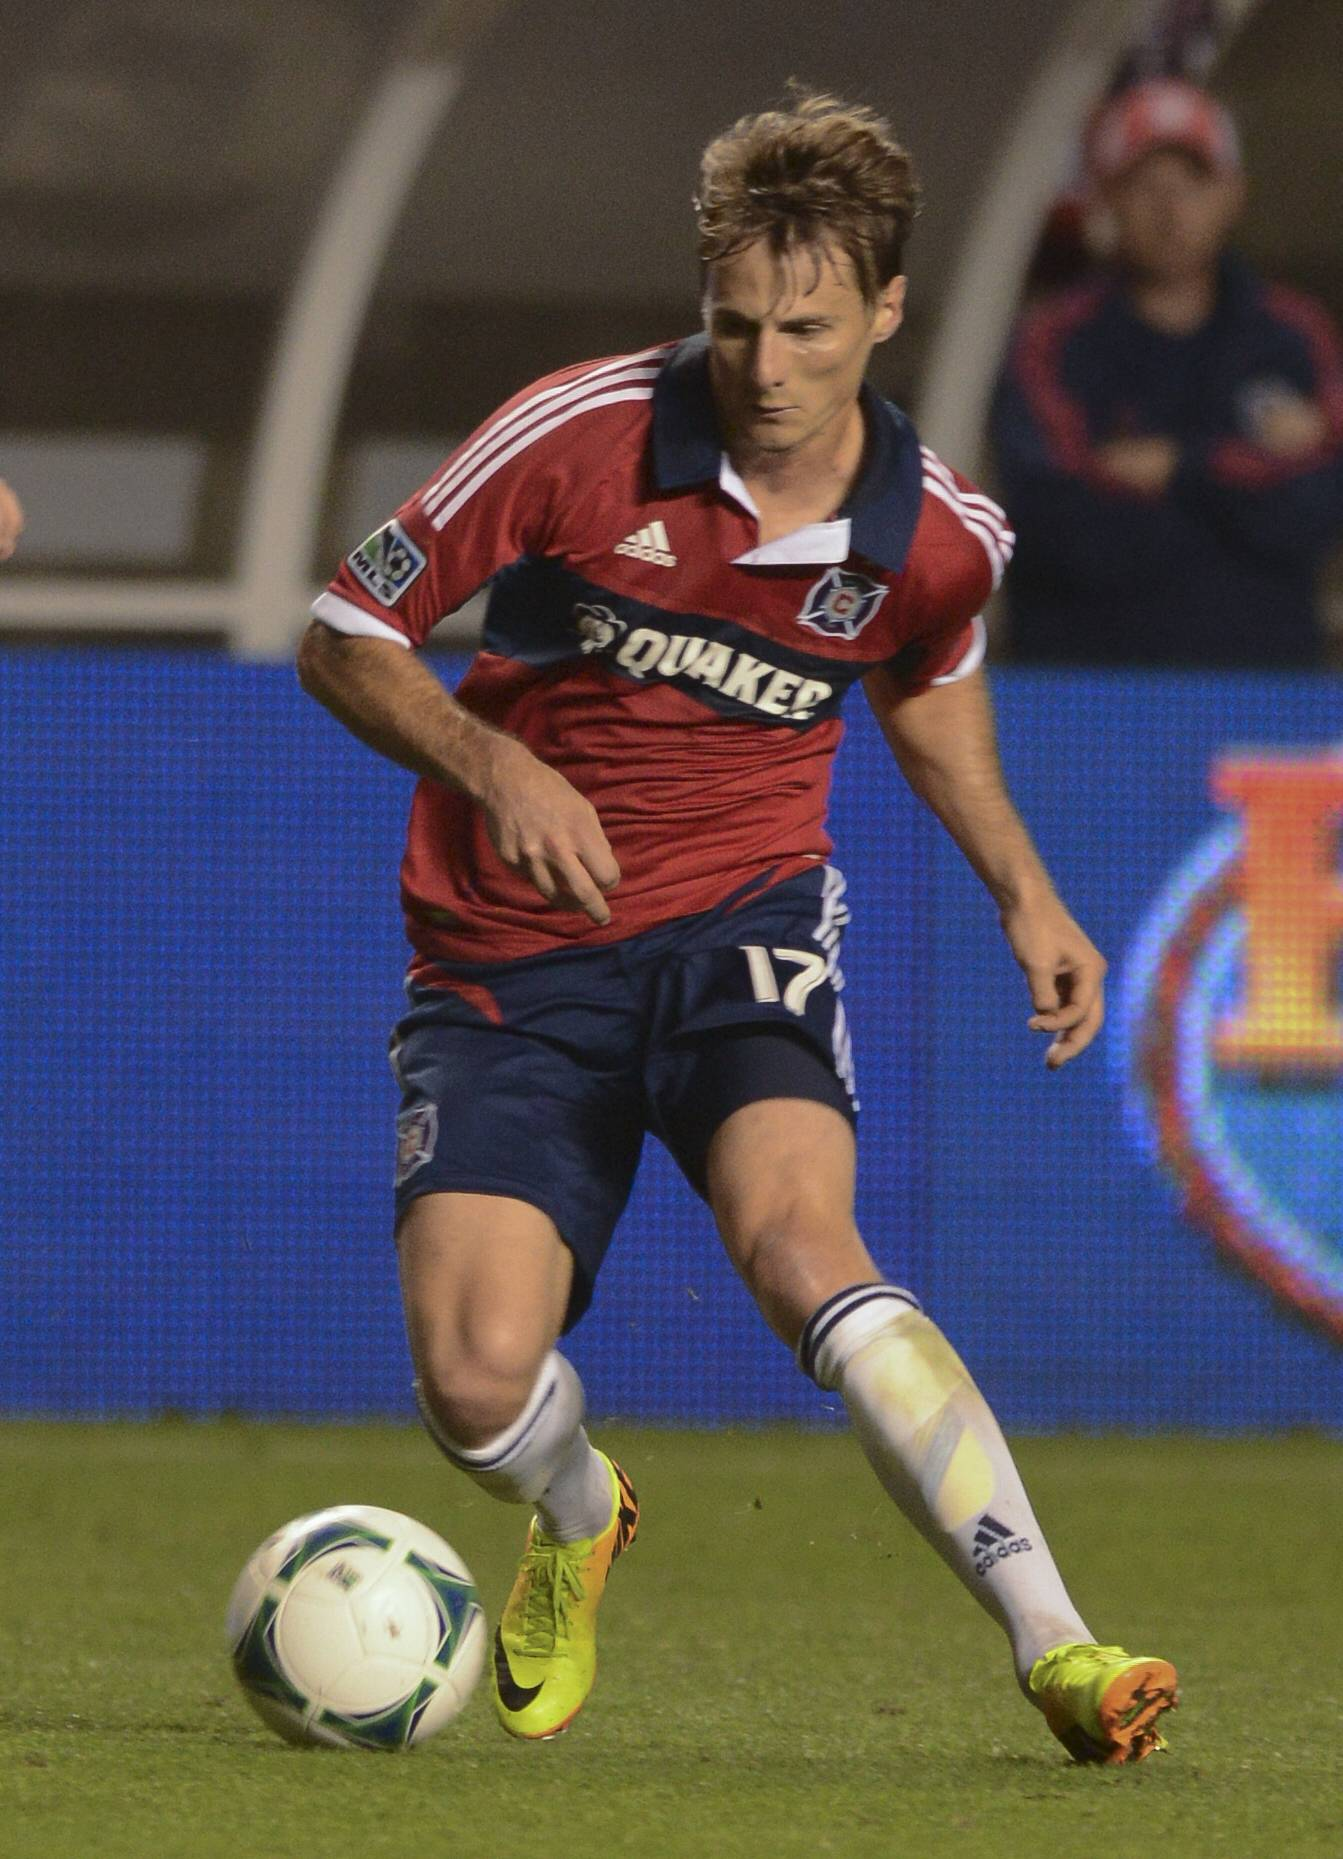 Veteran forward Chris Rolfe, who was drafted by the Chicago Fire in 2005, has been traded to D.C. United.